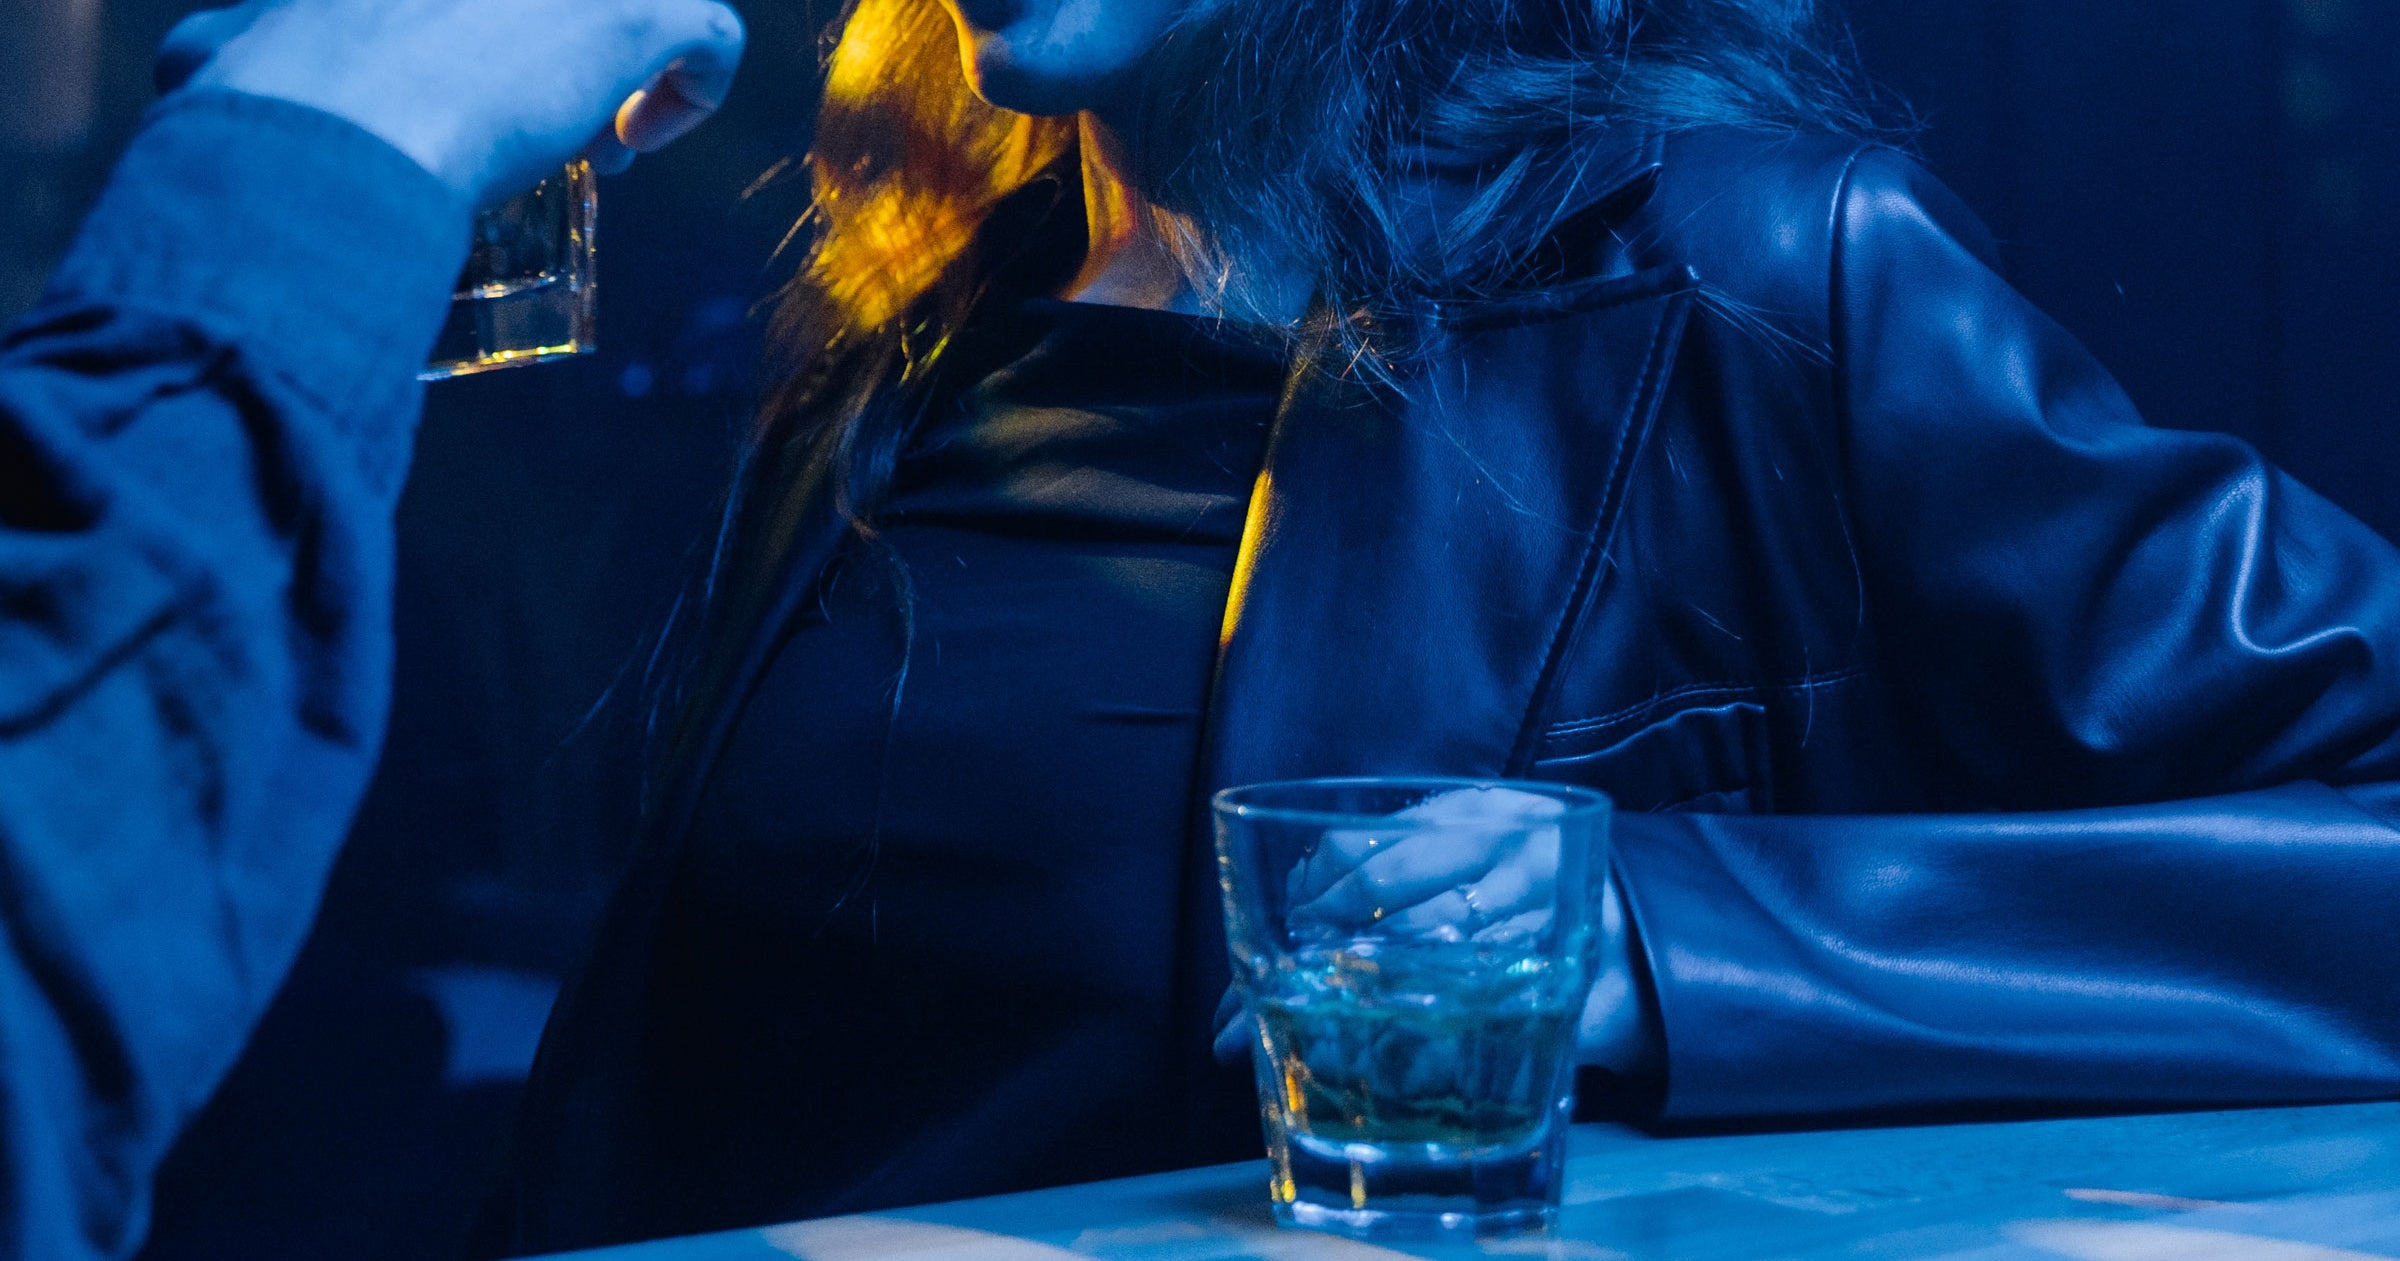 """Women Report Being """"Spiked With Needles"""" In UK Nightclubs: What's Going On?"""